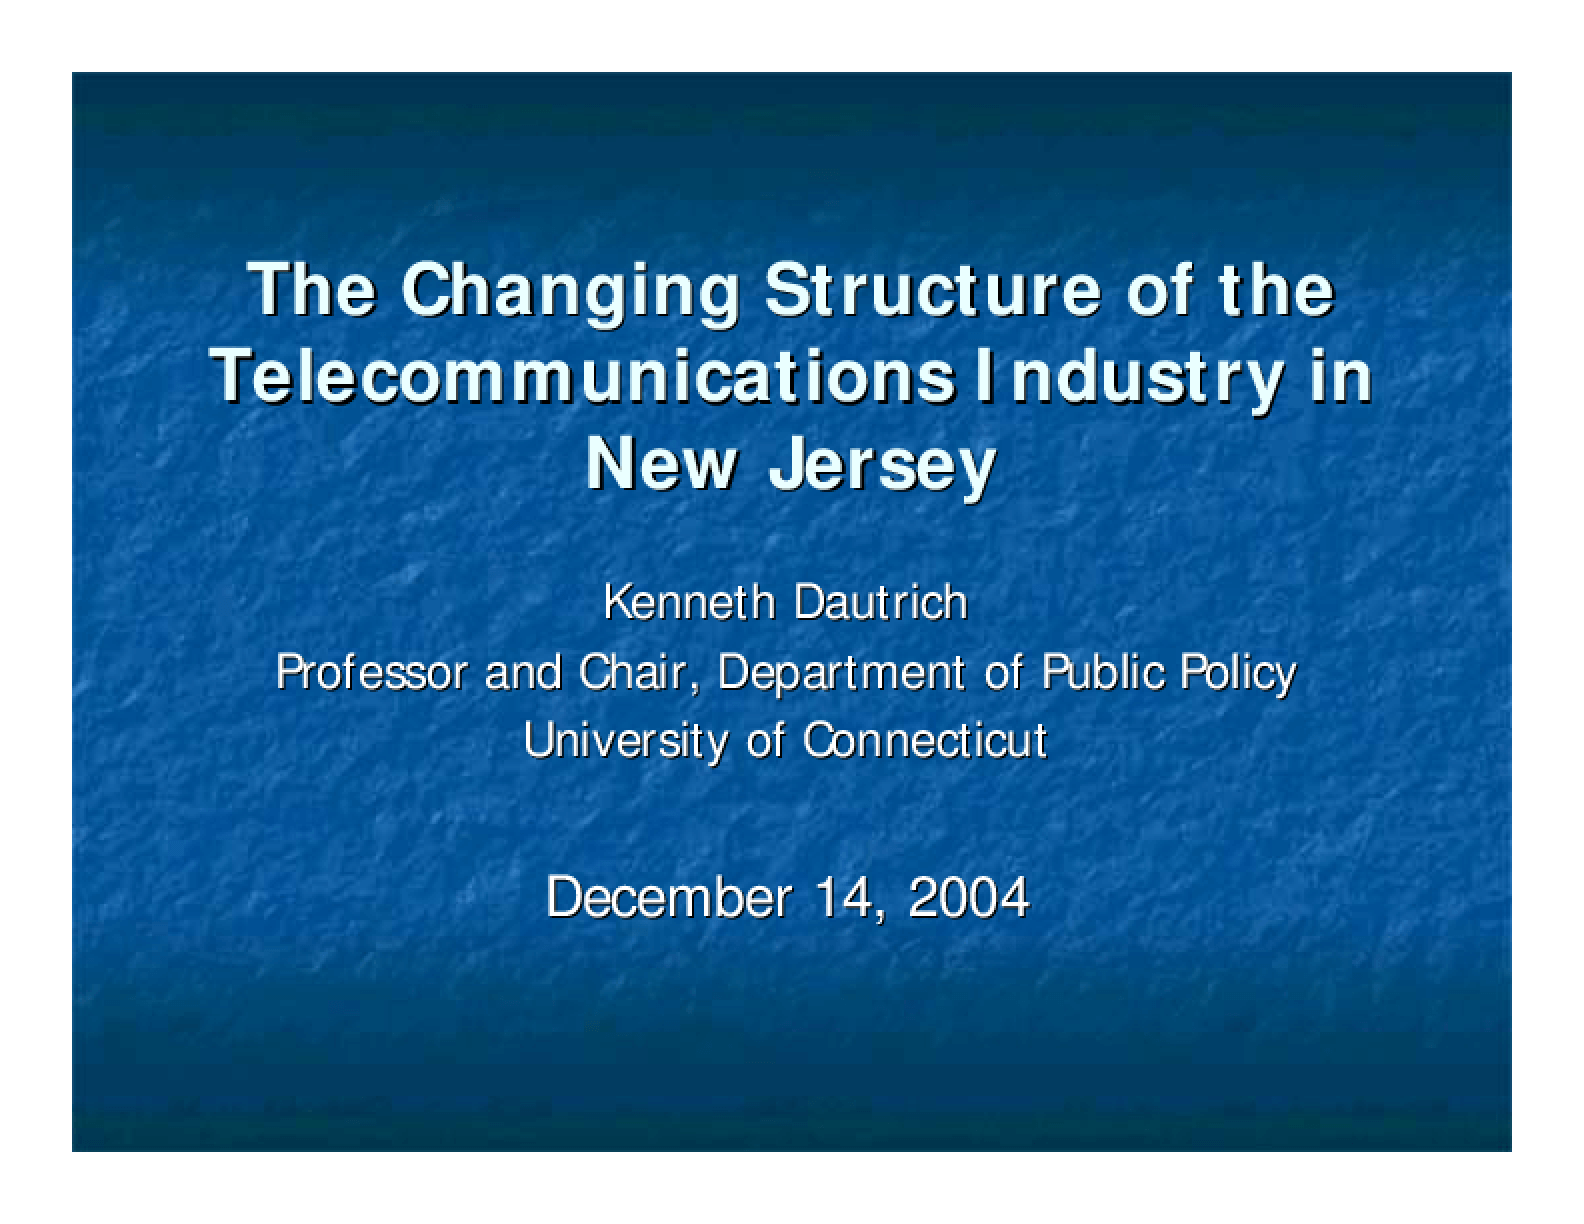 The Changing Structure of the Telecommunications Industry in New Jersey-Presentation